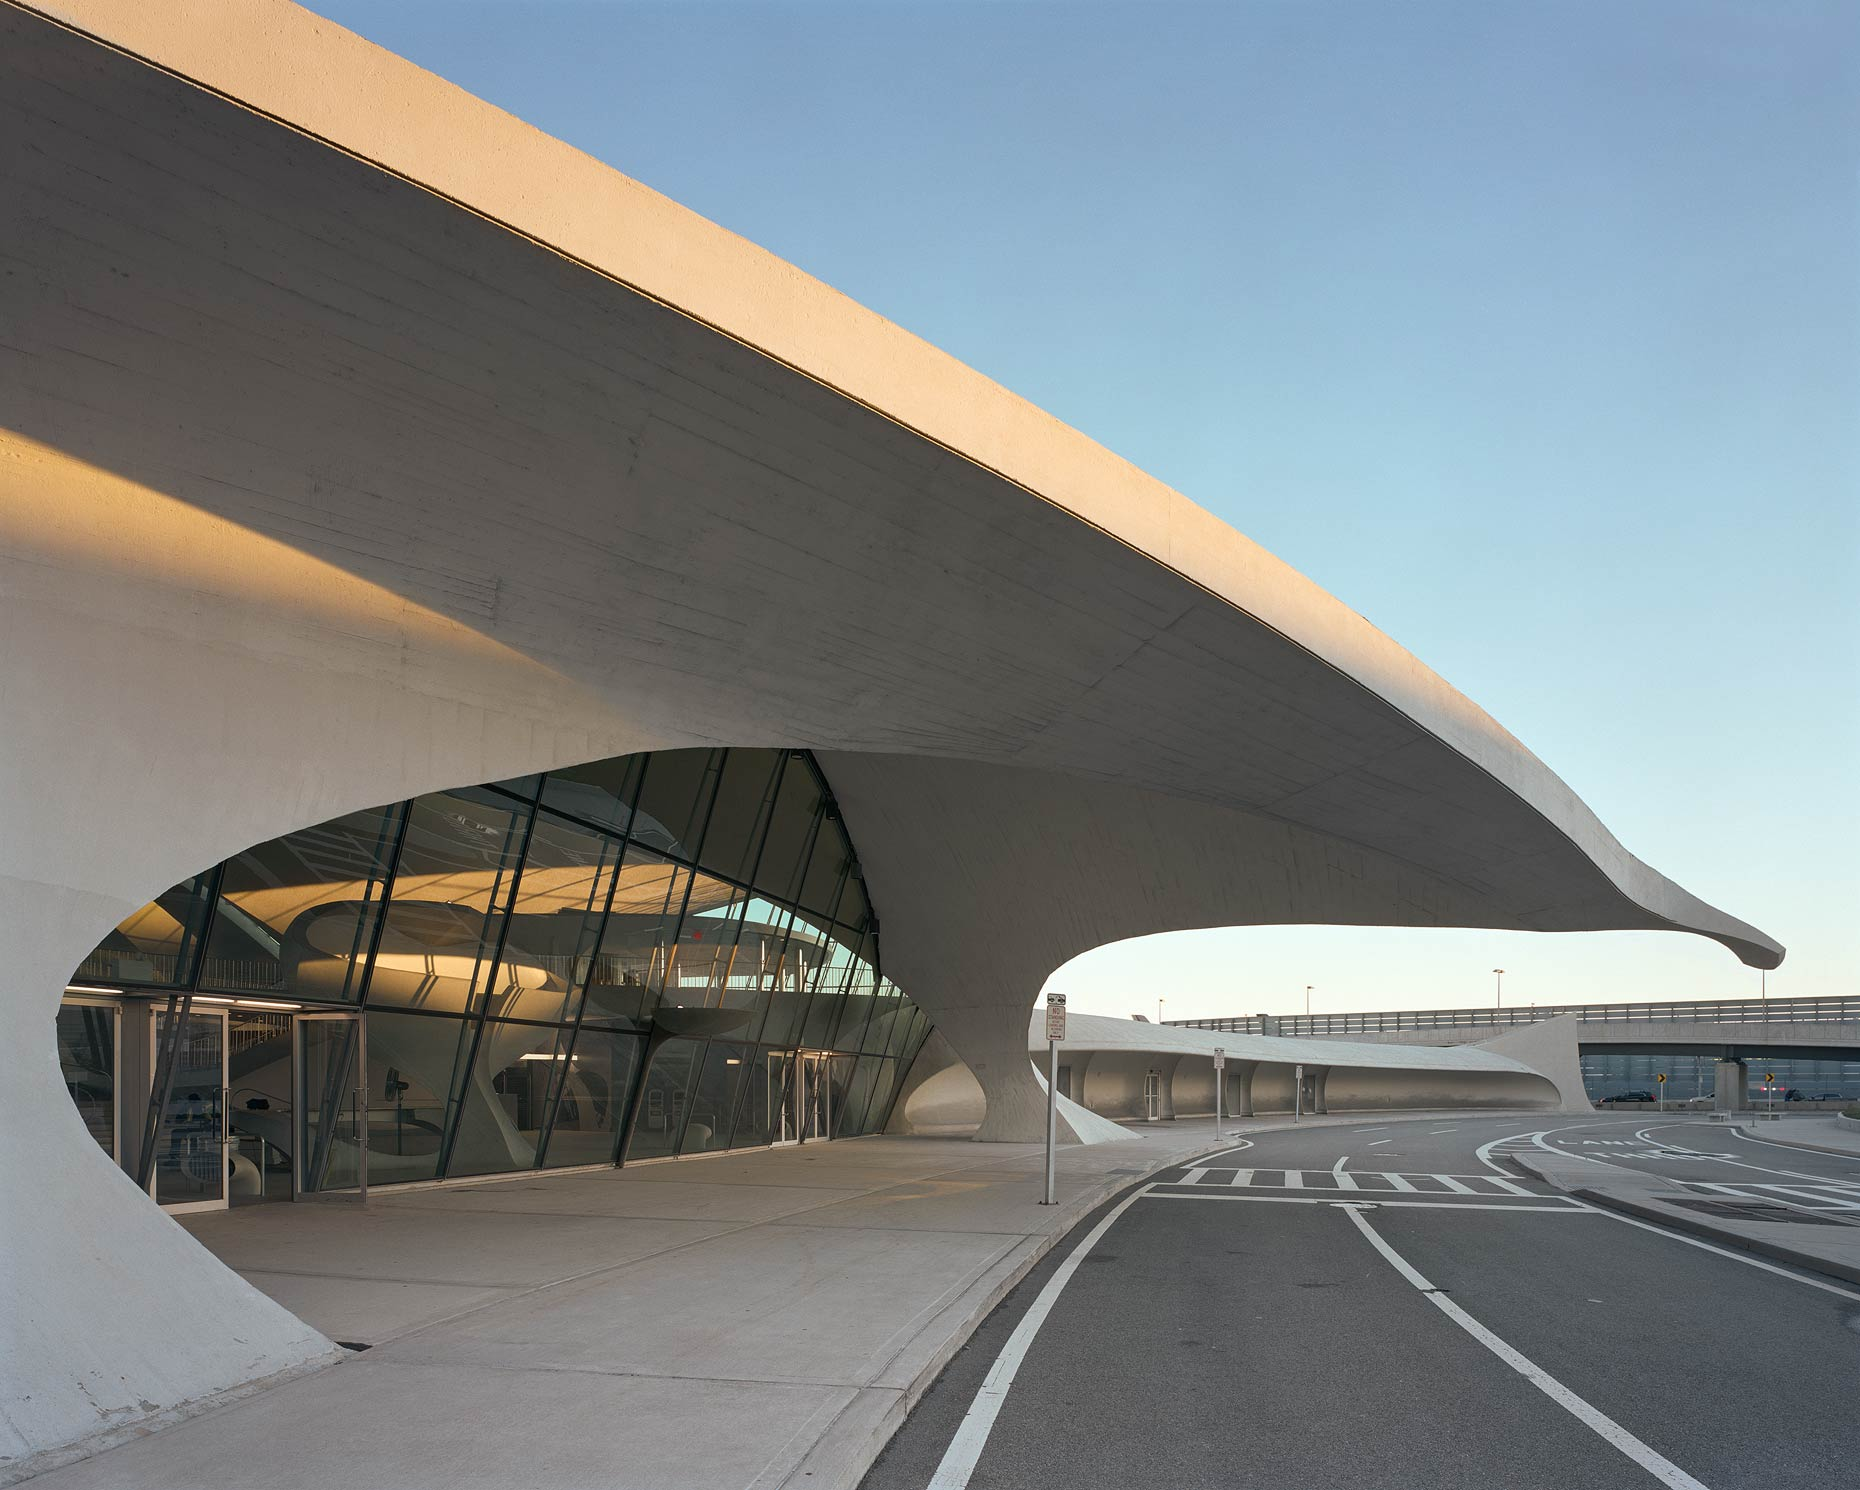 TWA Terminal, JFK International Airport, Queens, New York, 2011